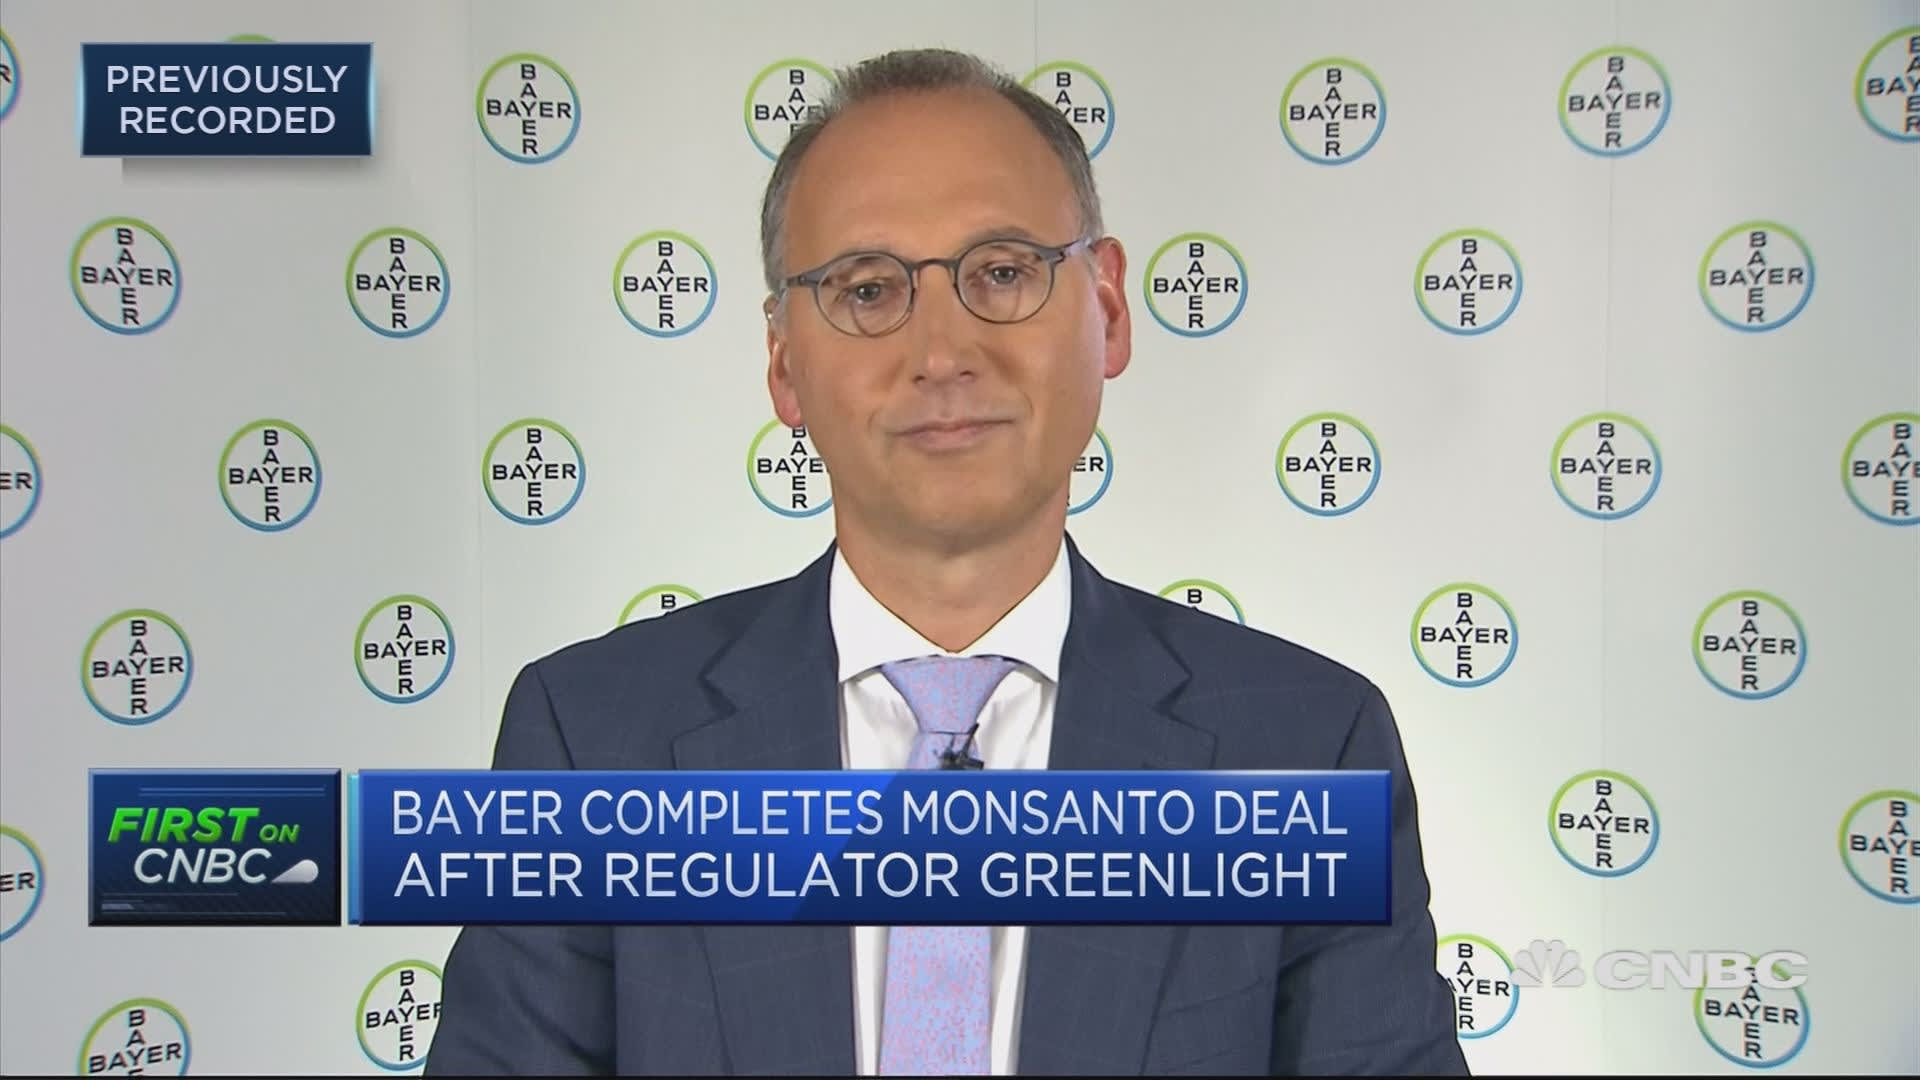 Bayer CEO: Monsanto deal will create $1 2 billion in synergies